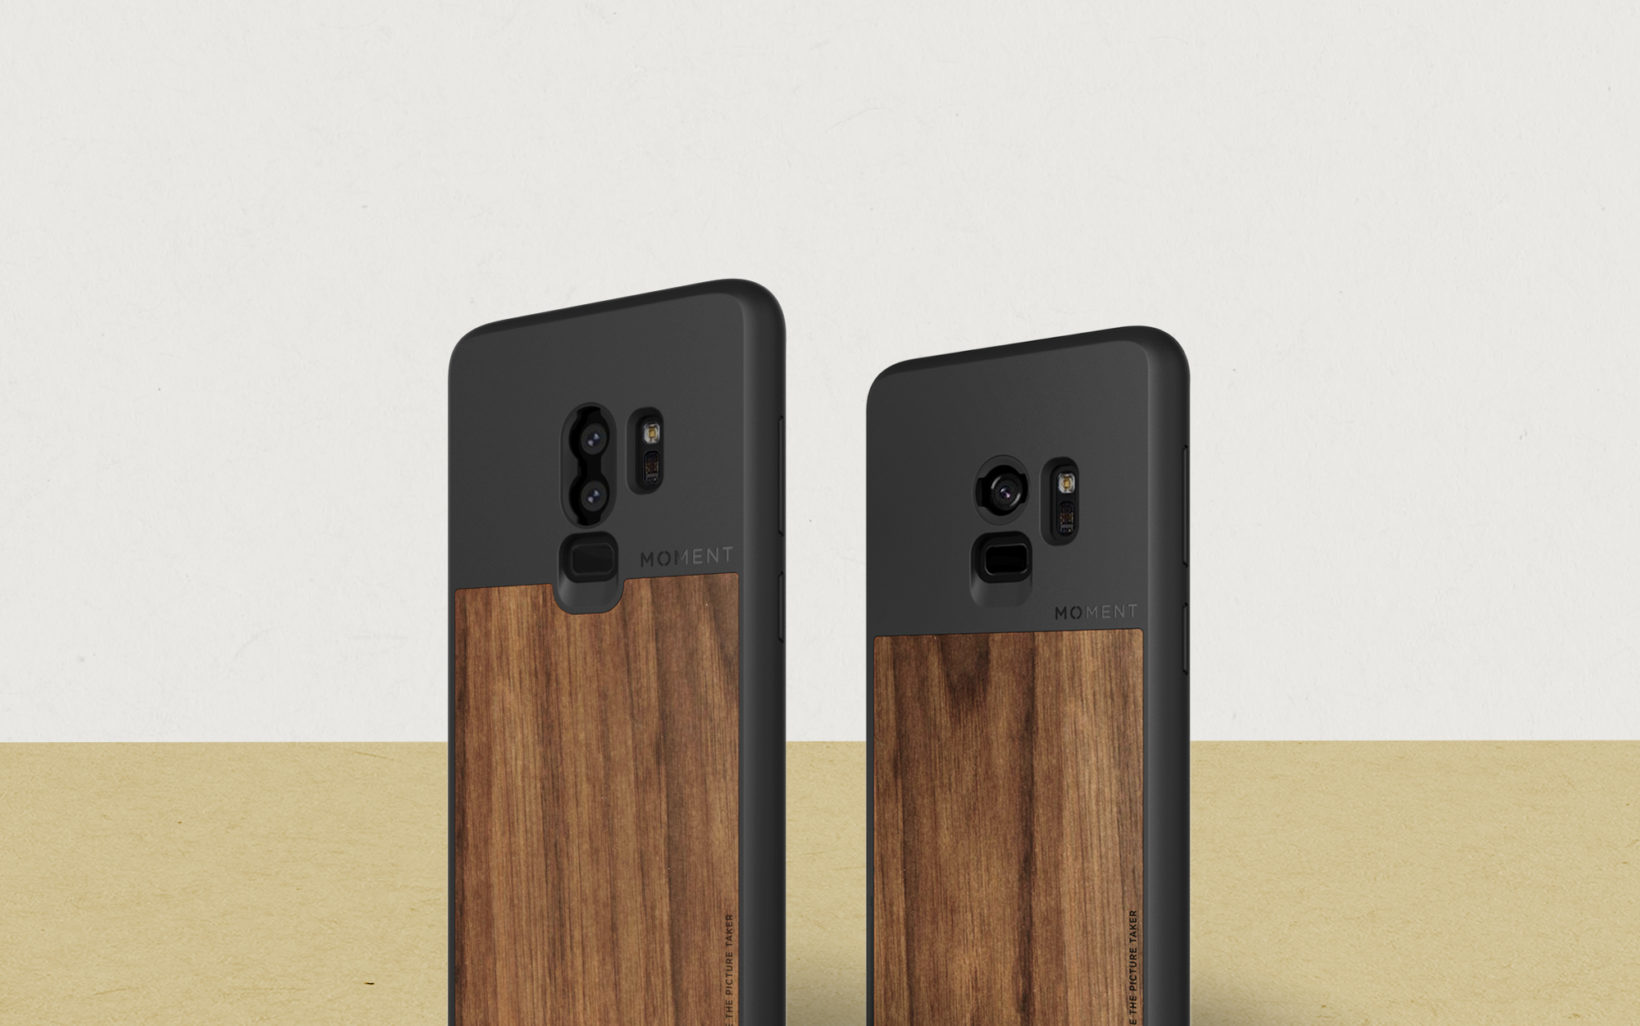 Samsung Galaxy S9 / S9+ Cases, Lenses, and Straps - Moment